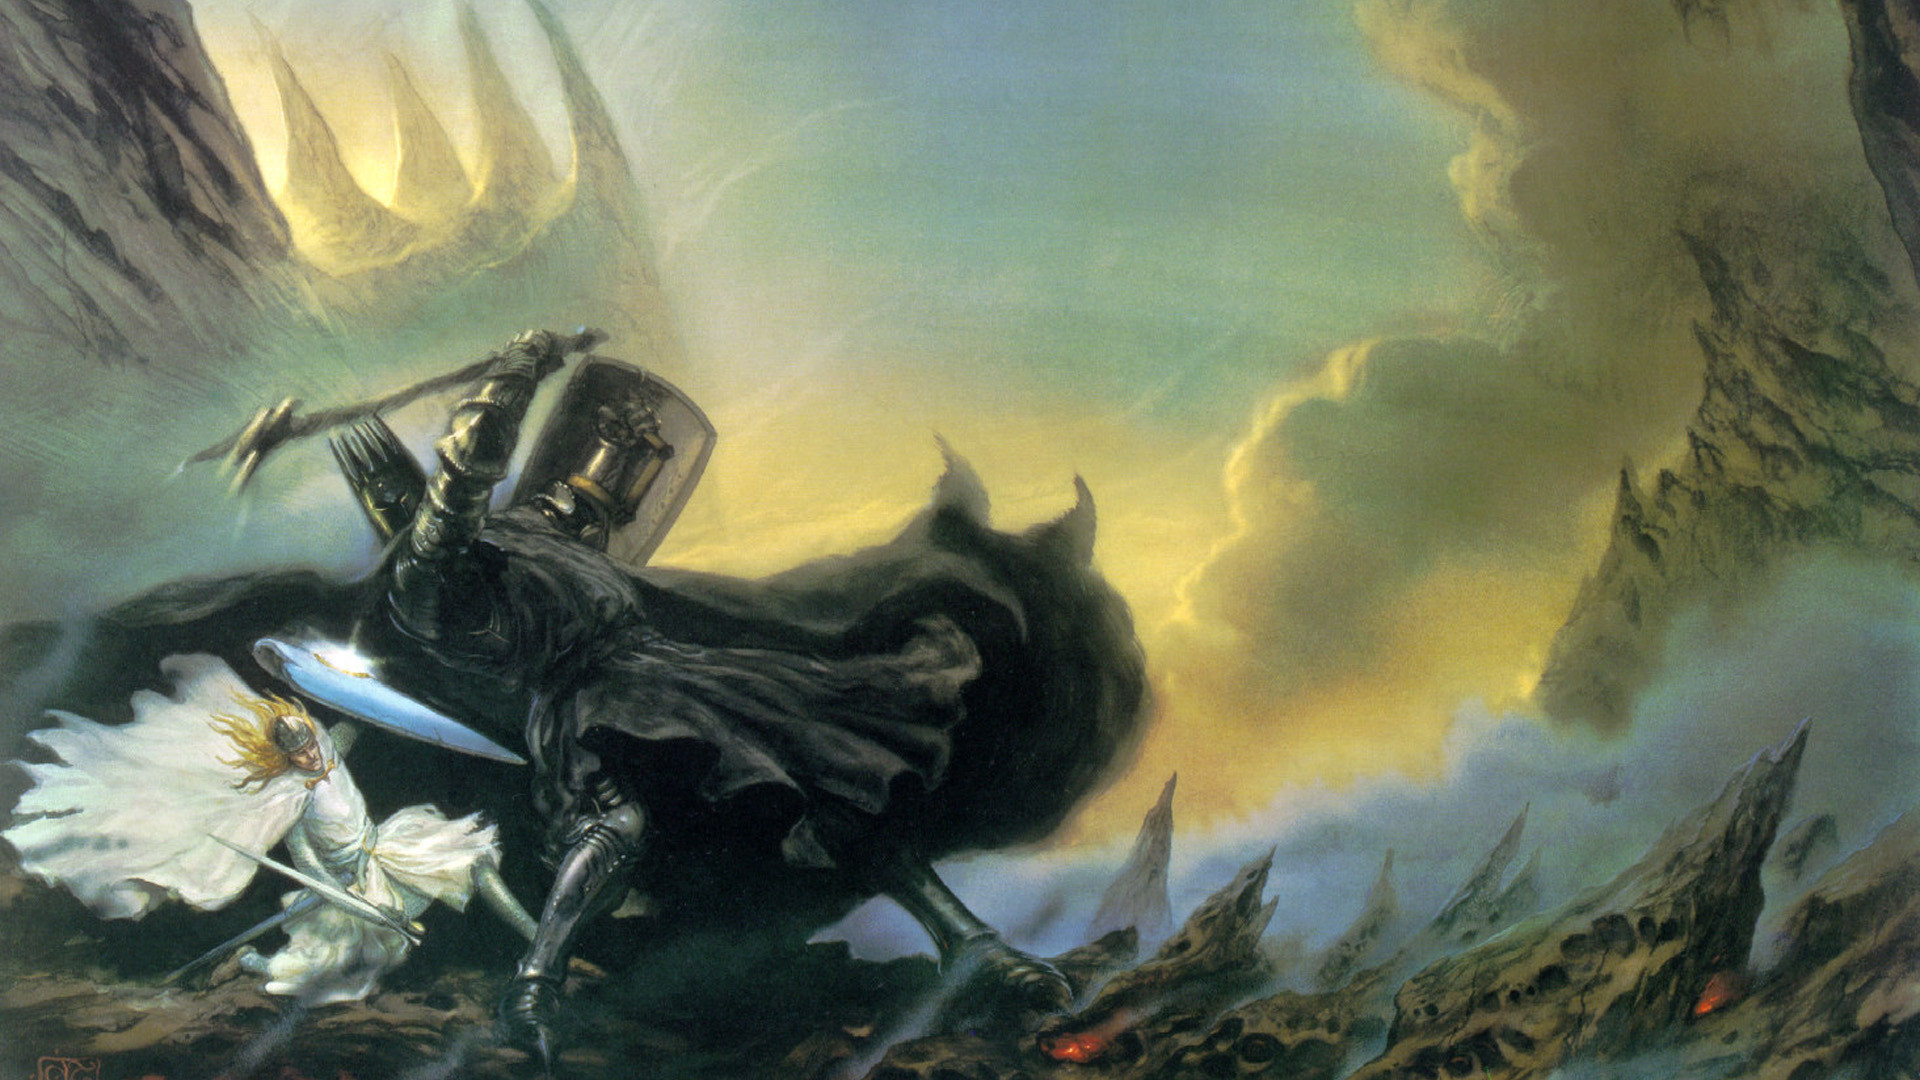 Res: 1920x1080, J. R. R. Tolkien, The Silmarillion, Morgoth, Fantasy Art, John Howe  Wallpapers HD / Desktop and Mobile Backgrounds